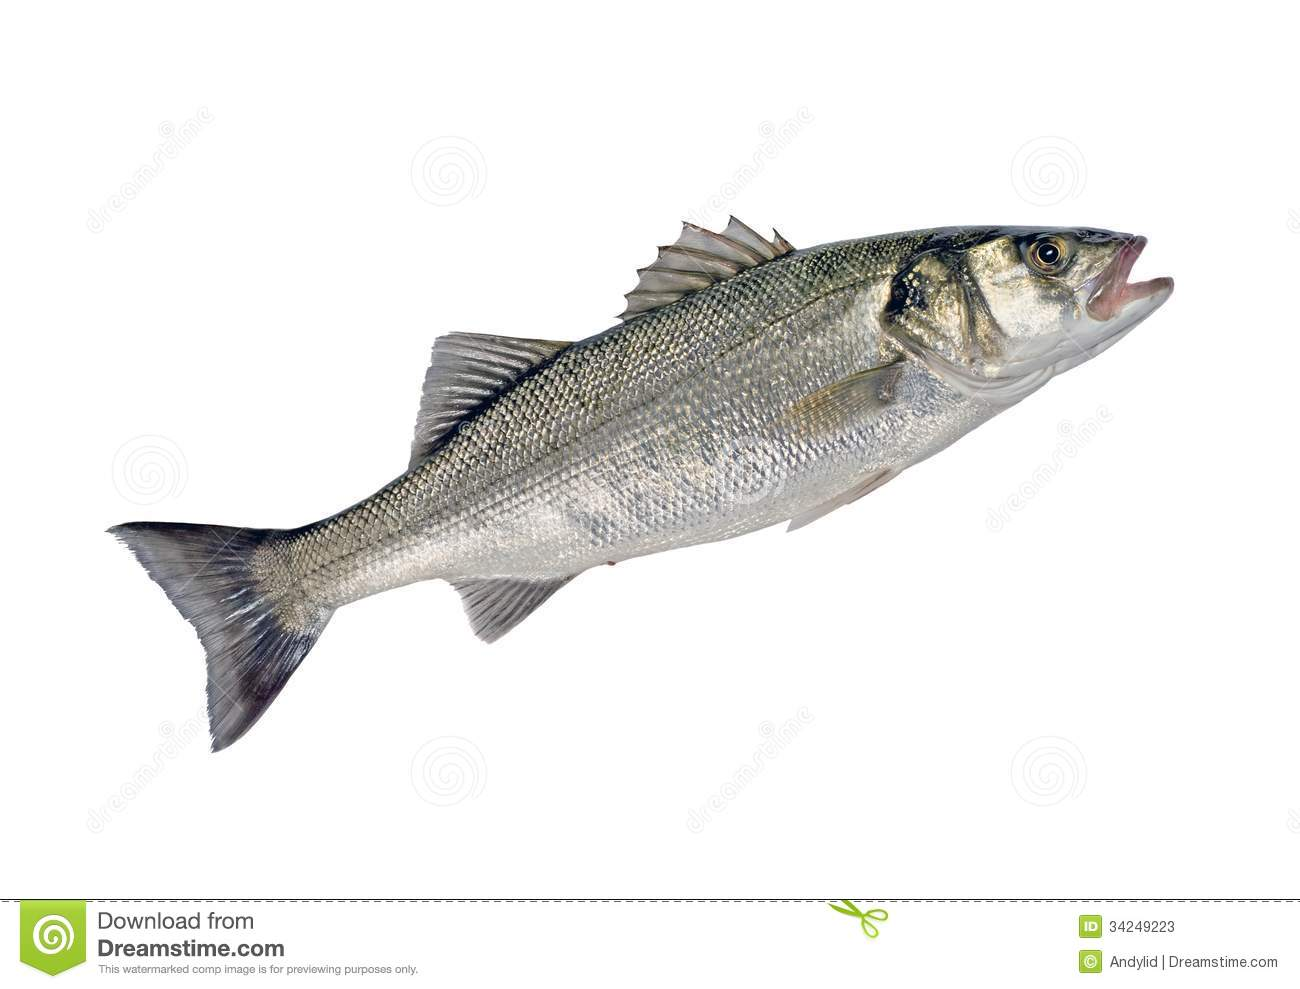 Sea bass fish stock photos image 34249223 for Silver bass fish